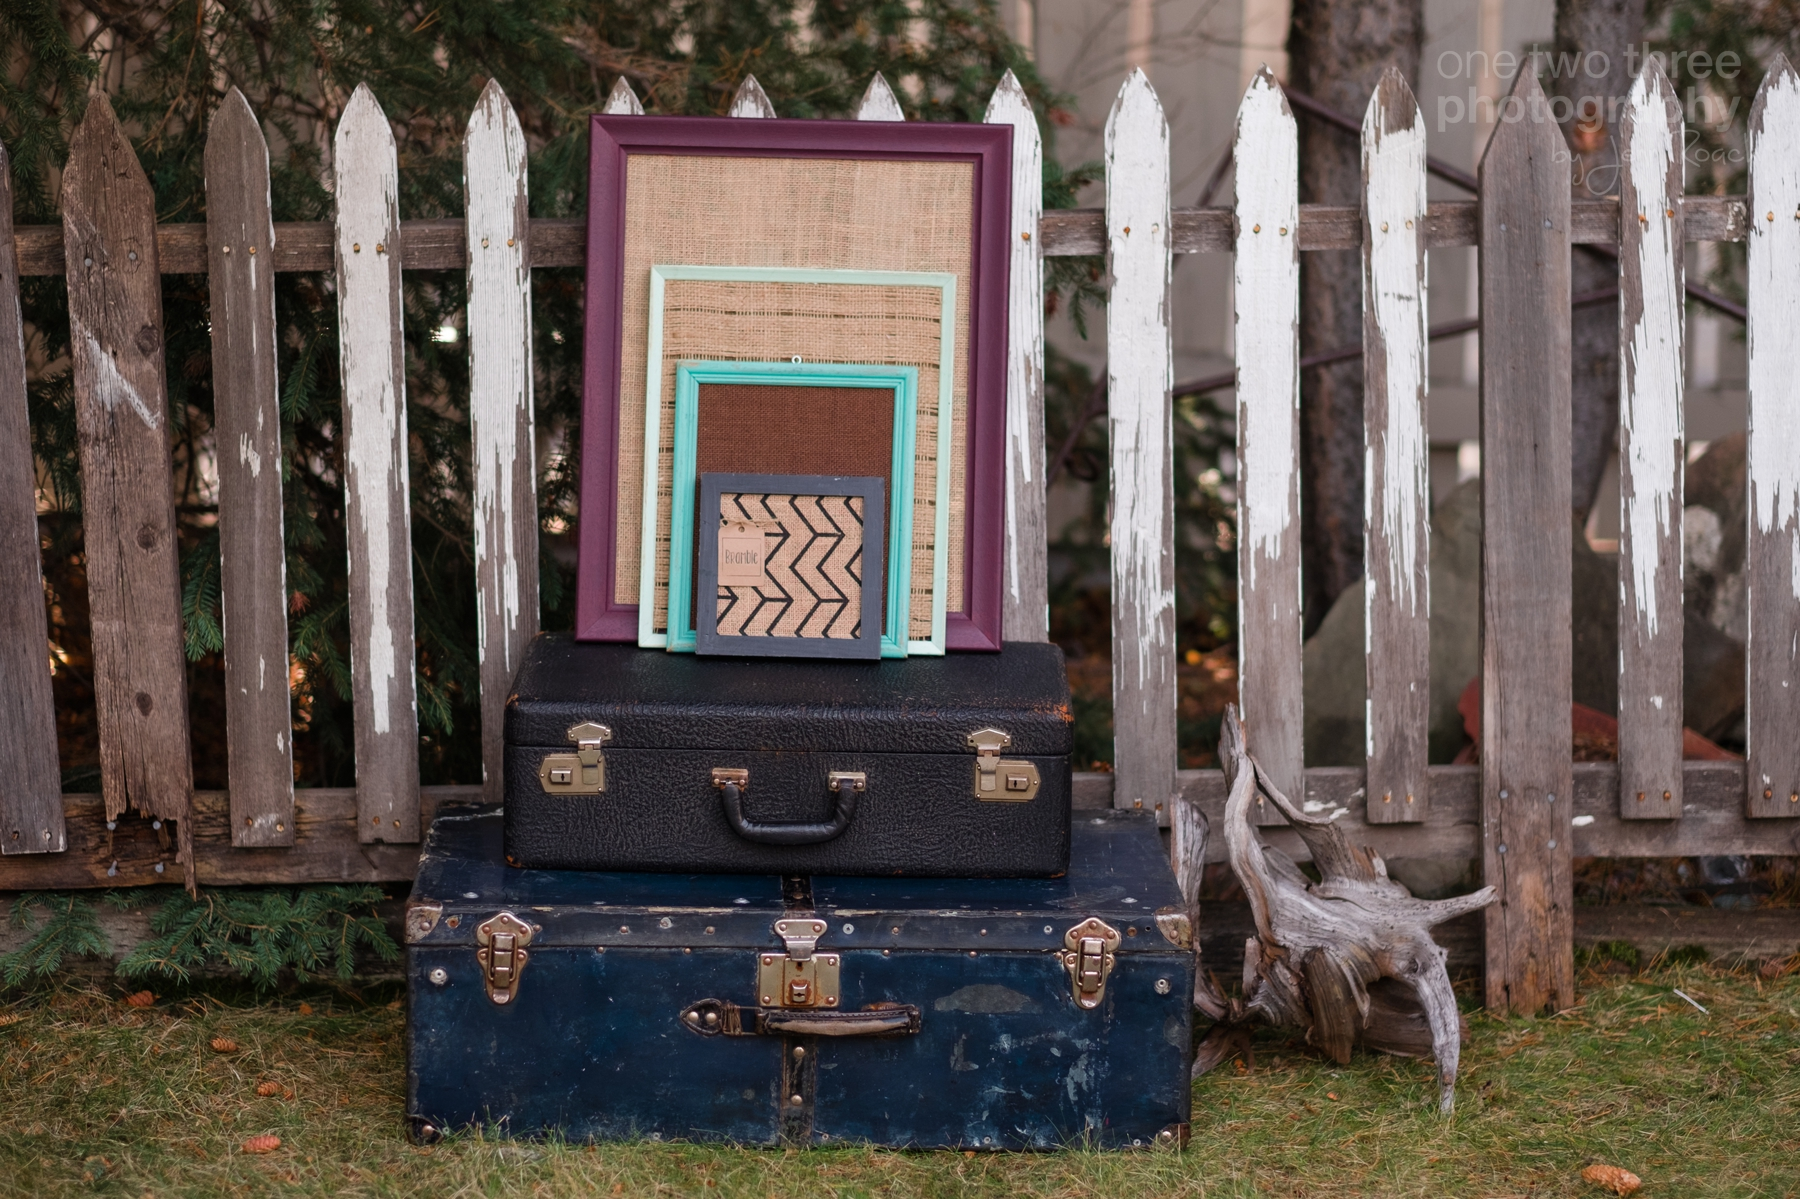 Bramble Handmade frames for sale and suitcases for rent